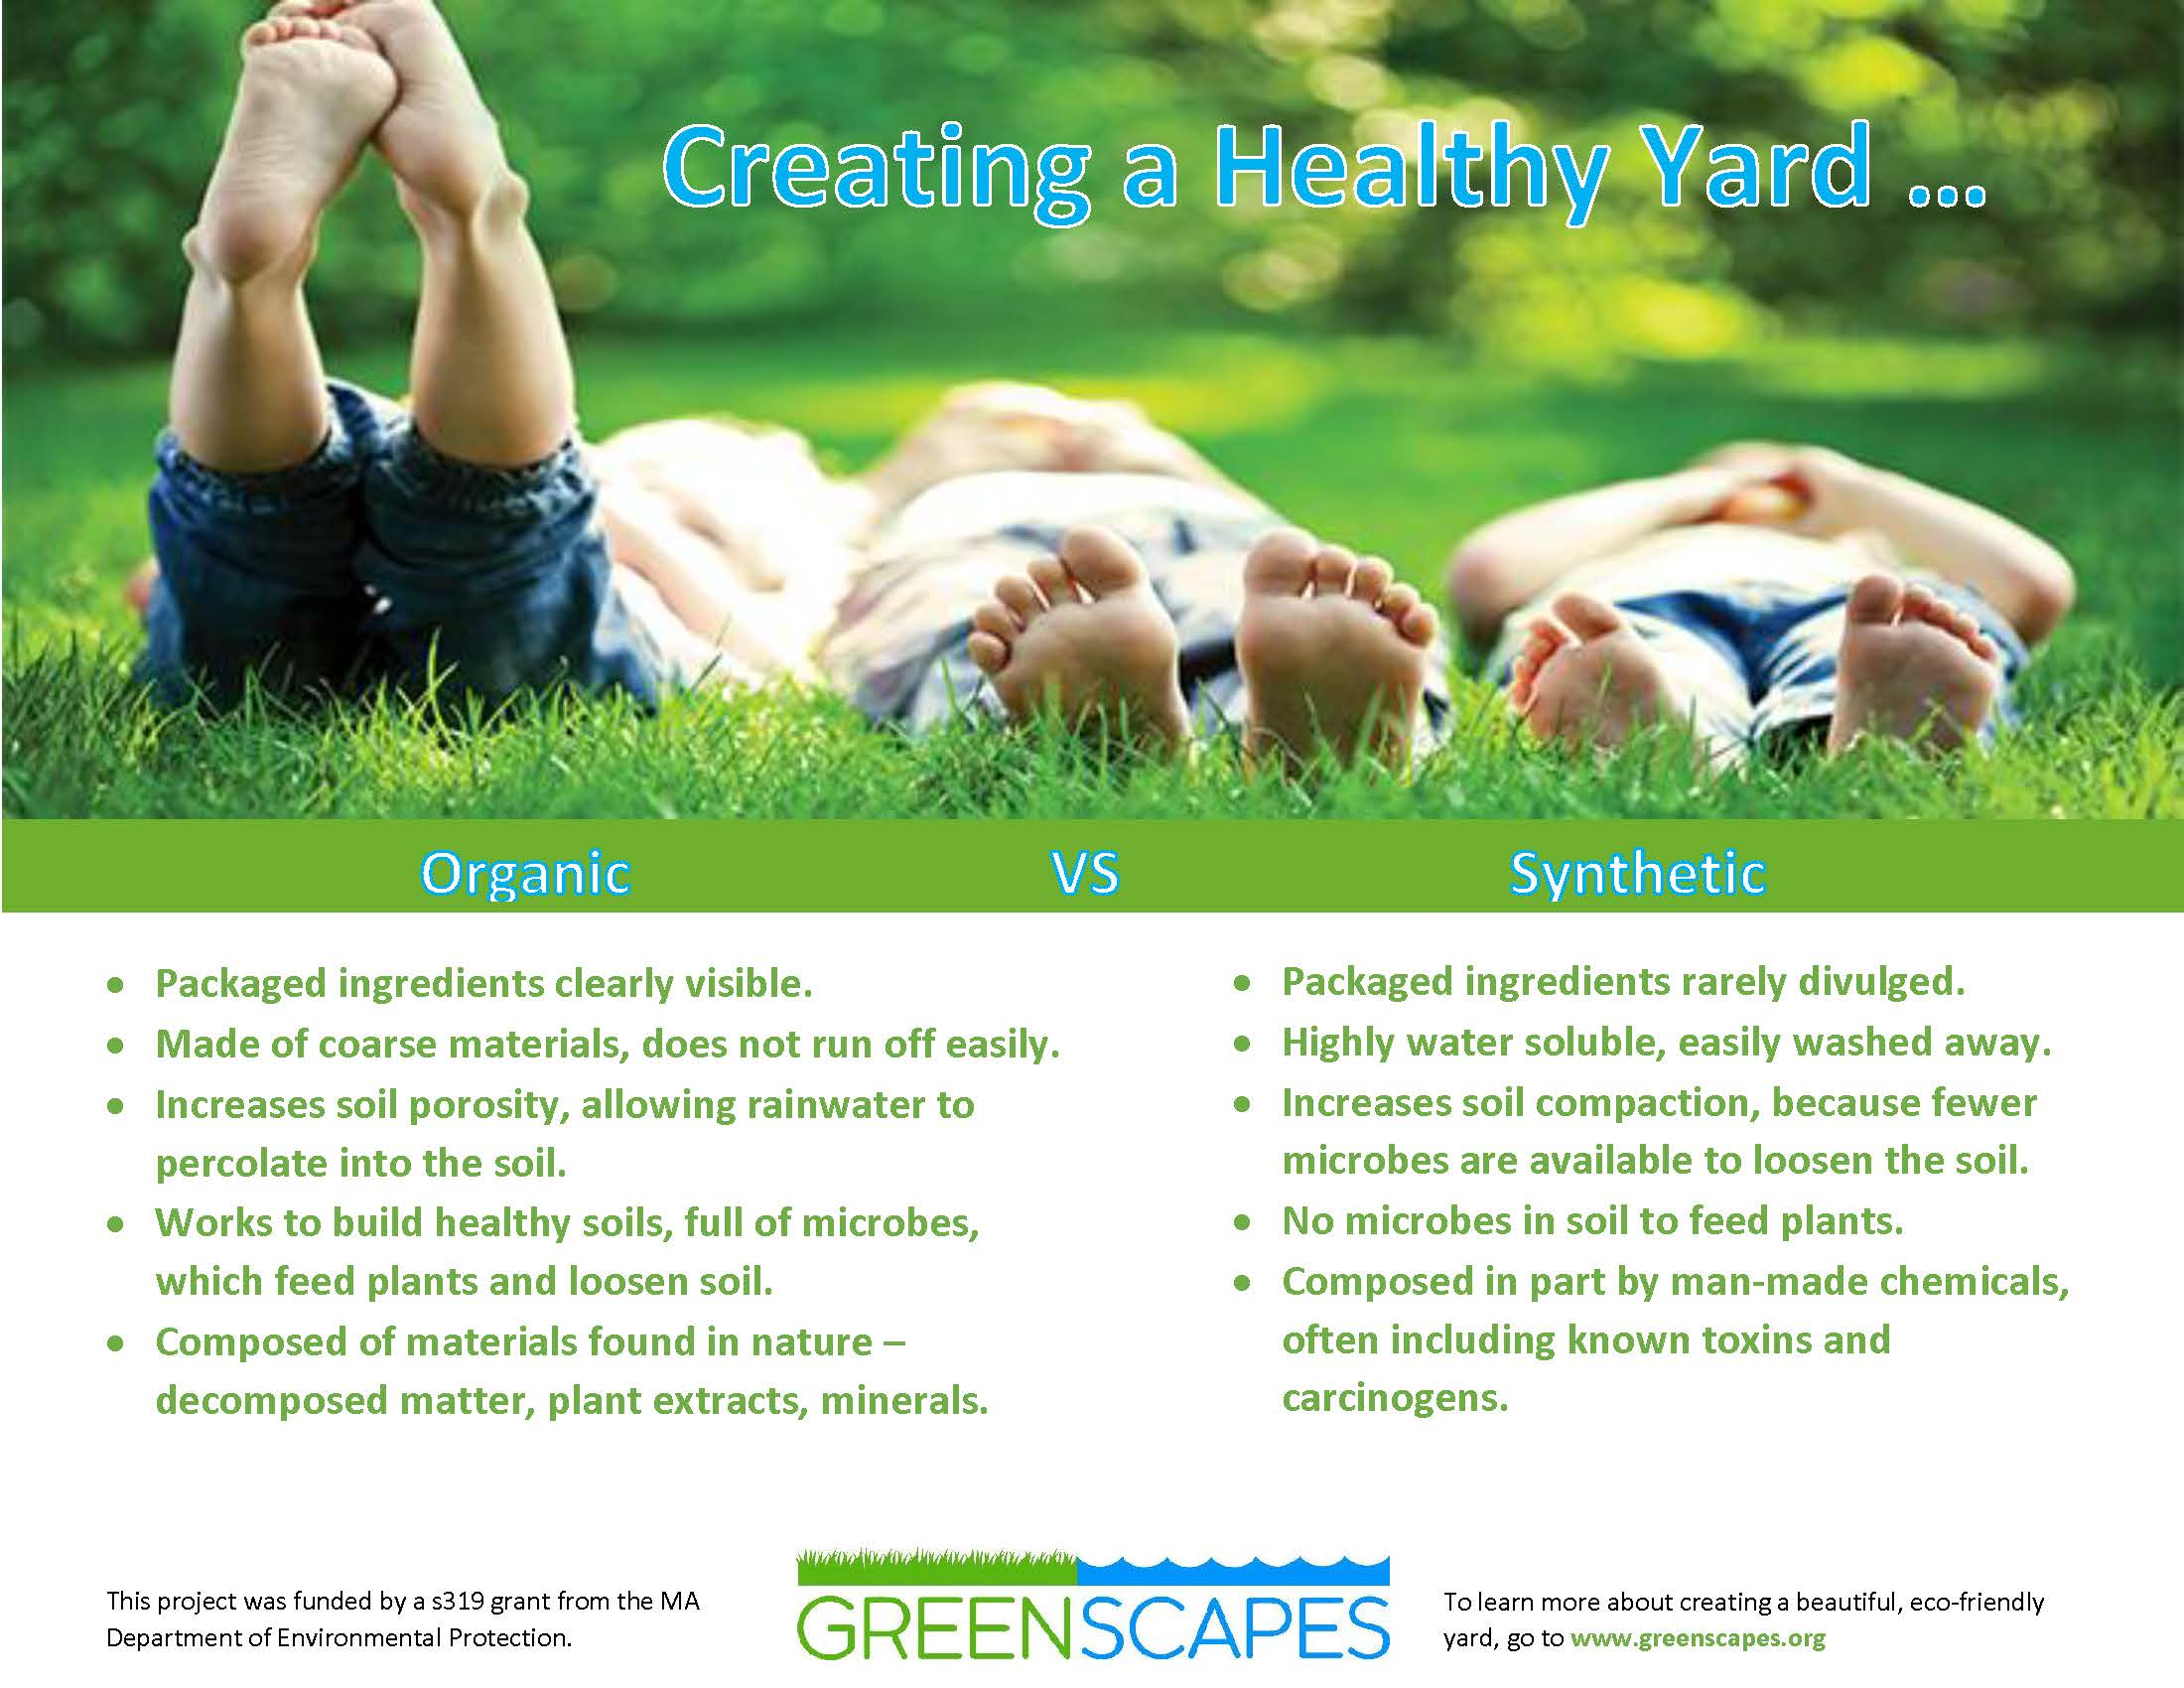 19greenscapes-creating-a-healthy-yard_Page_1